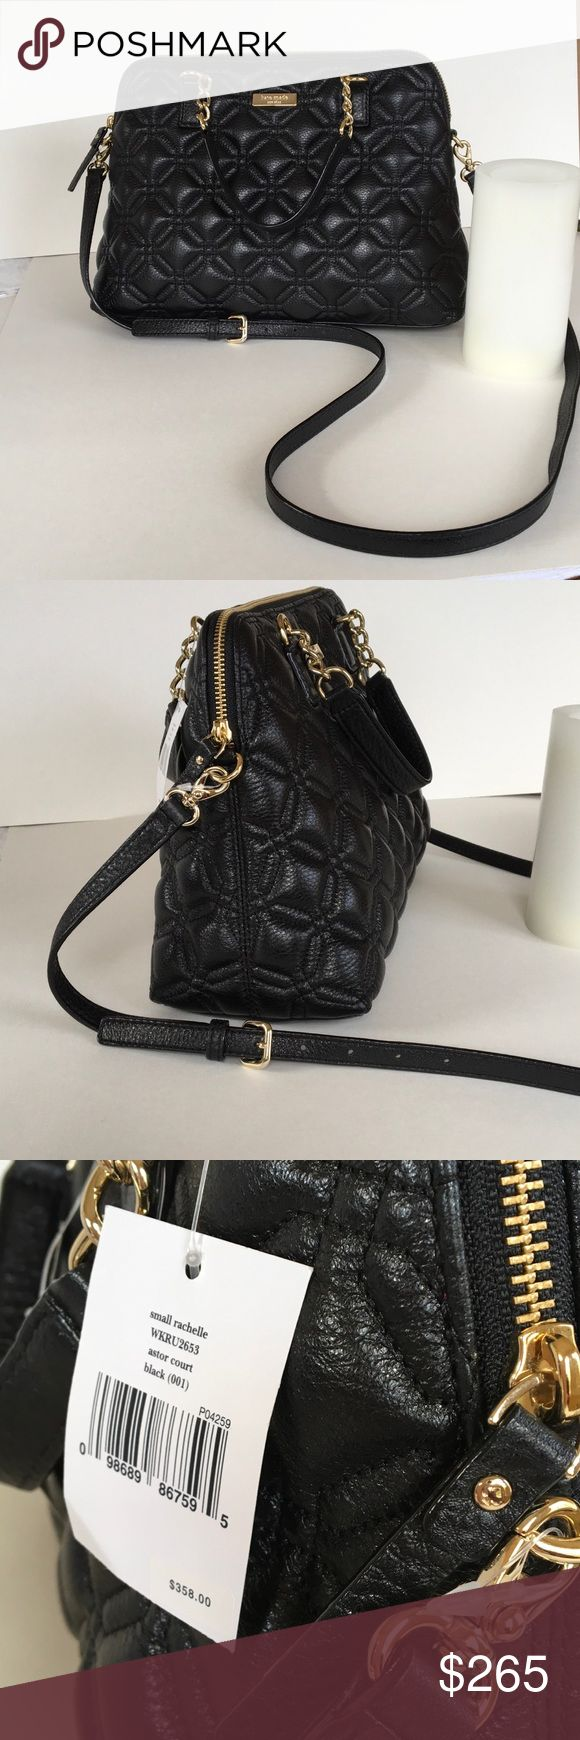 💥Kate Spade ♠️ Astor Court Kate Spade small Rachelle Astor Court in black quilted exterior with hot pink interior, gold tone hardware. Pristine!  This looks like the love child between a Chanel bag and a Louis Vuitton Alma. It's an instant classic!!❤️❤️❤️ kate spade Bags Satchels